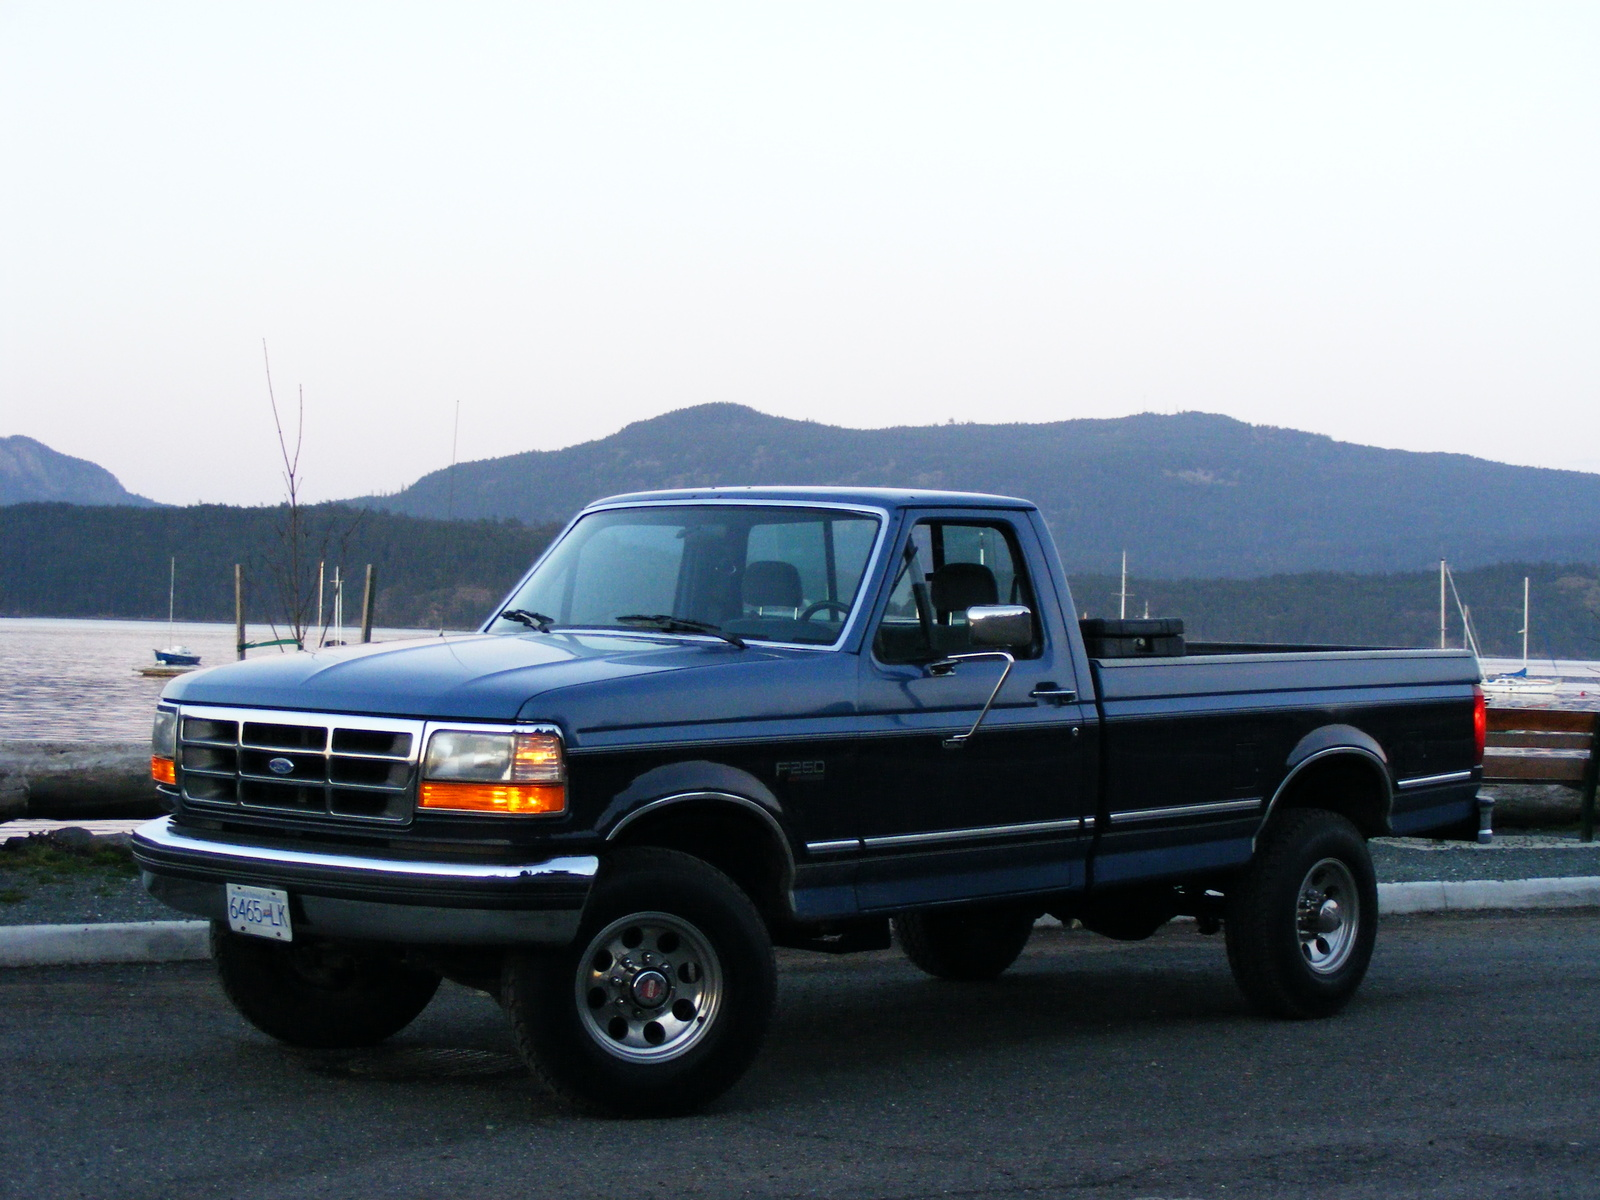 Ford f-250 1972 photo - 3